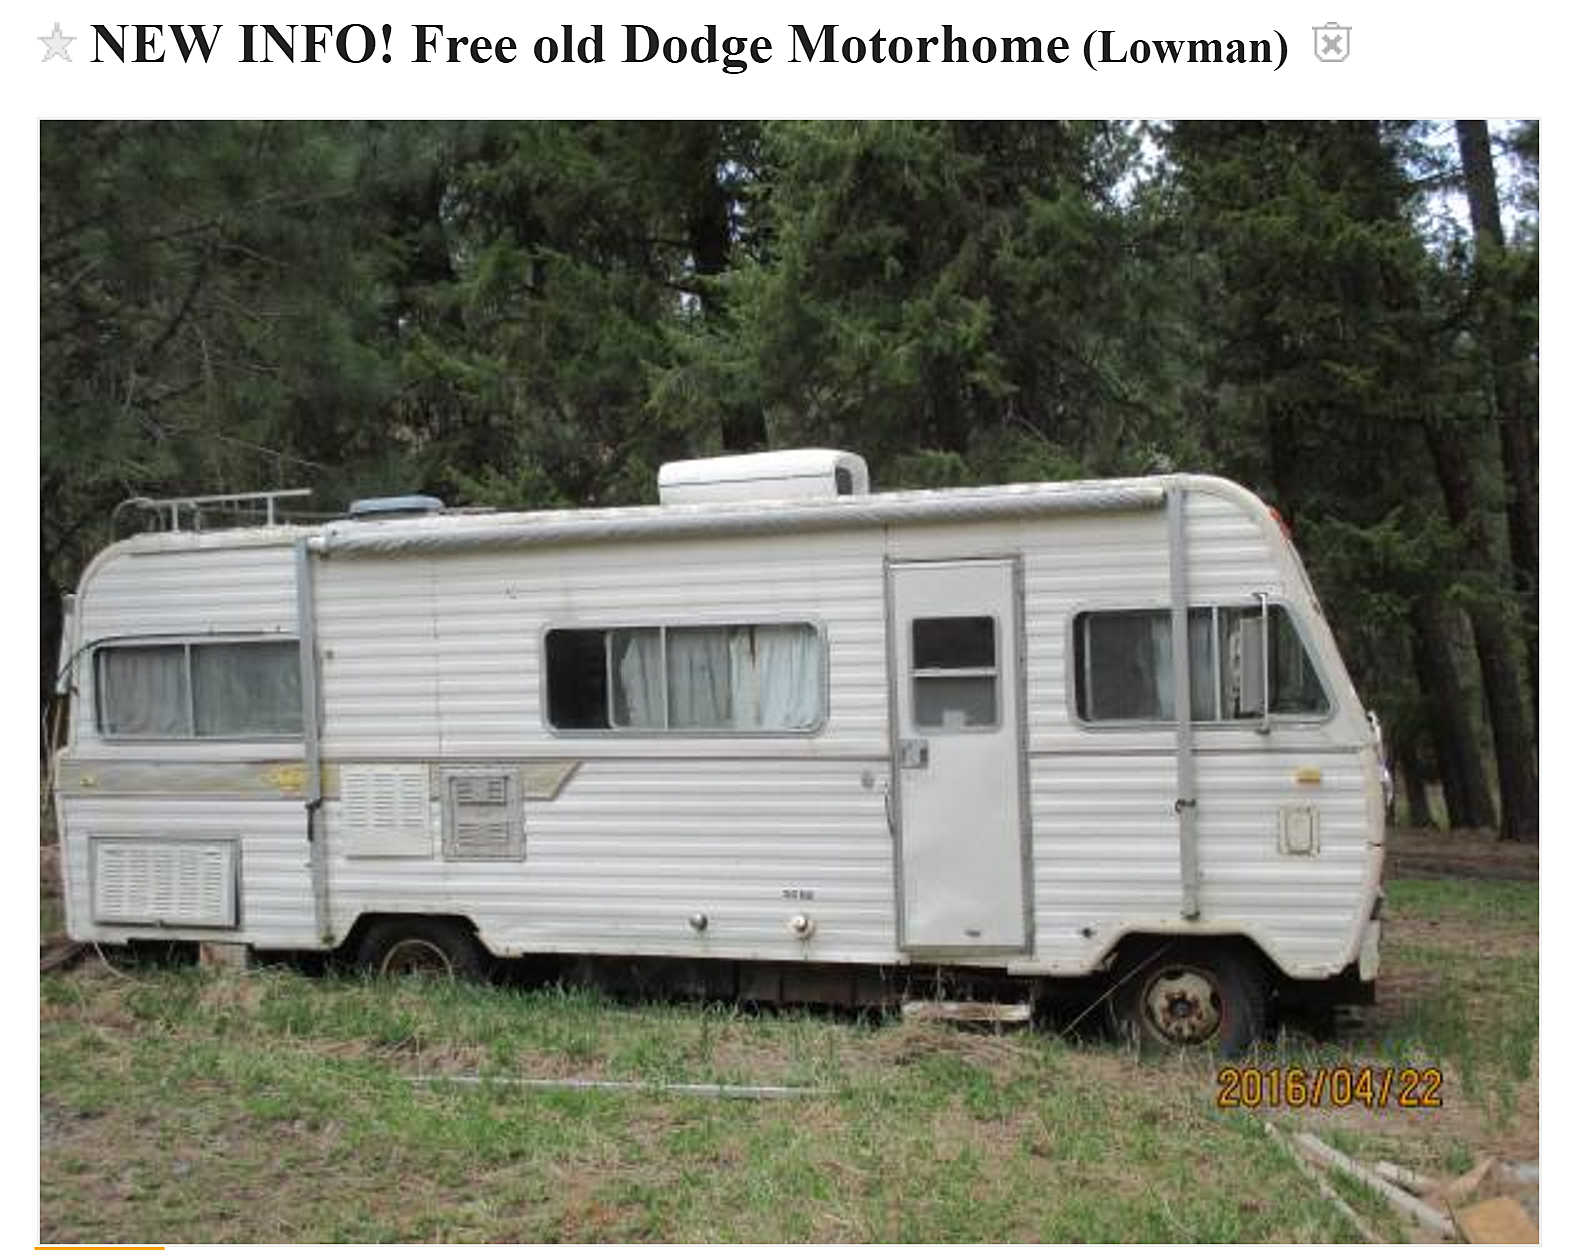 Yes, There's Another Free Mobile Home On Craigslist (PHOTOS) on how to stuff homes, how to get a mansion, home free homes, how to get on housing, how to get cars,